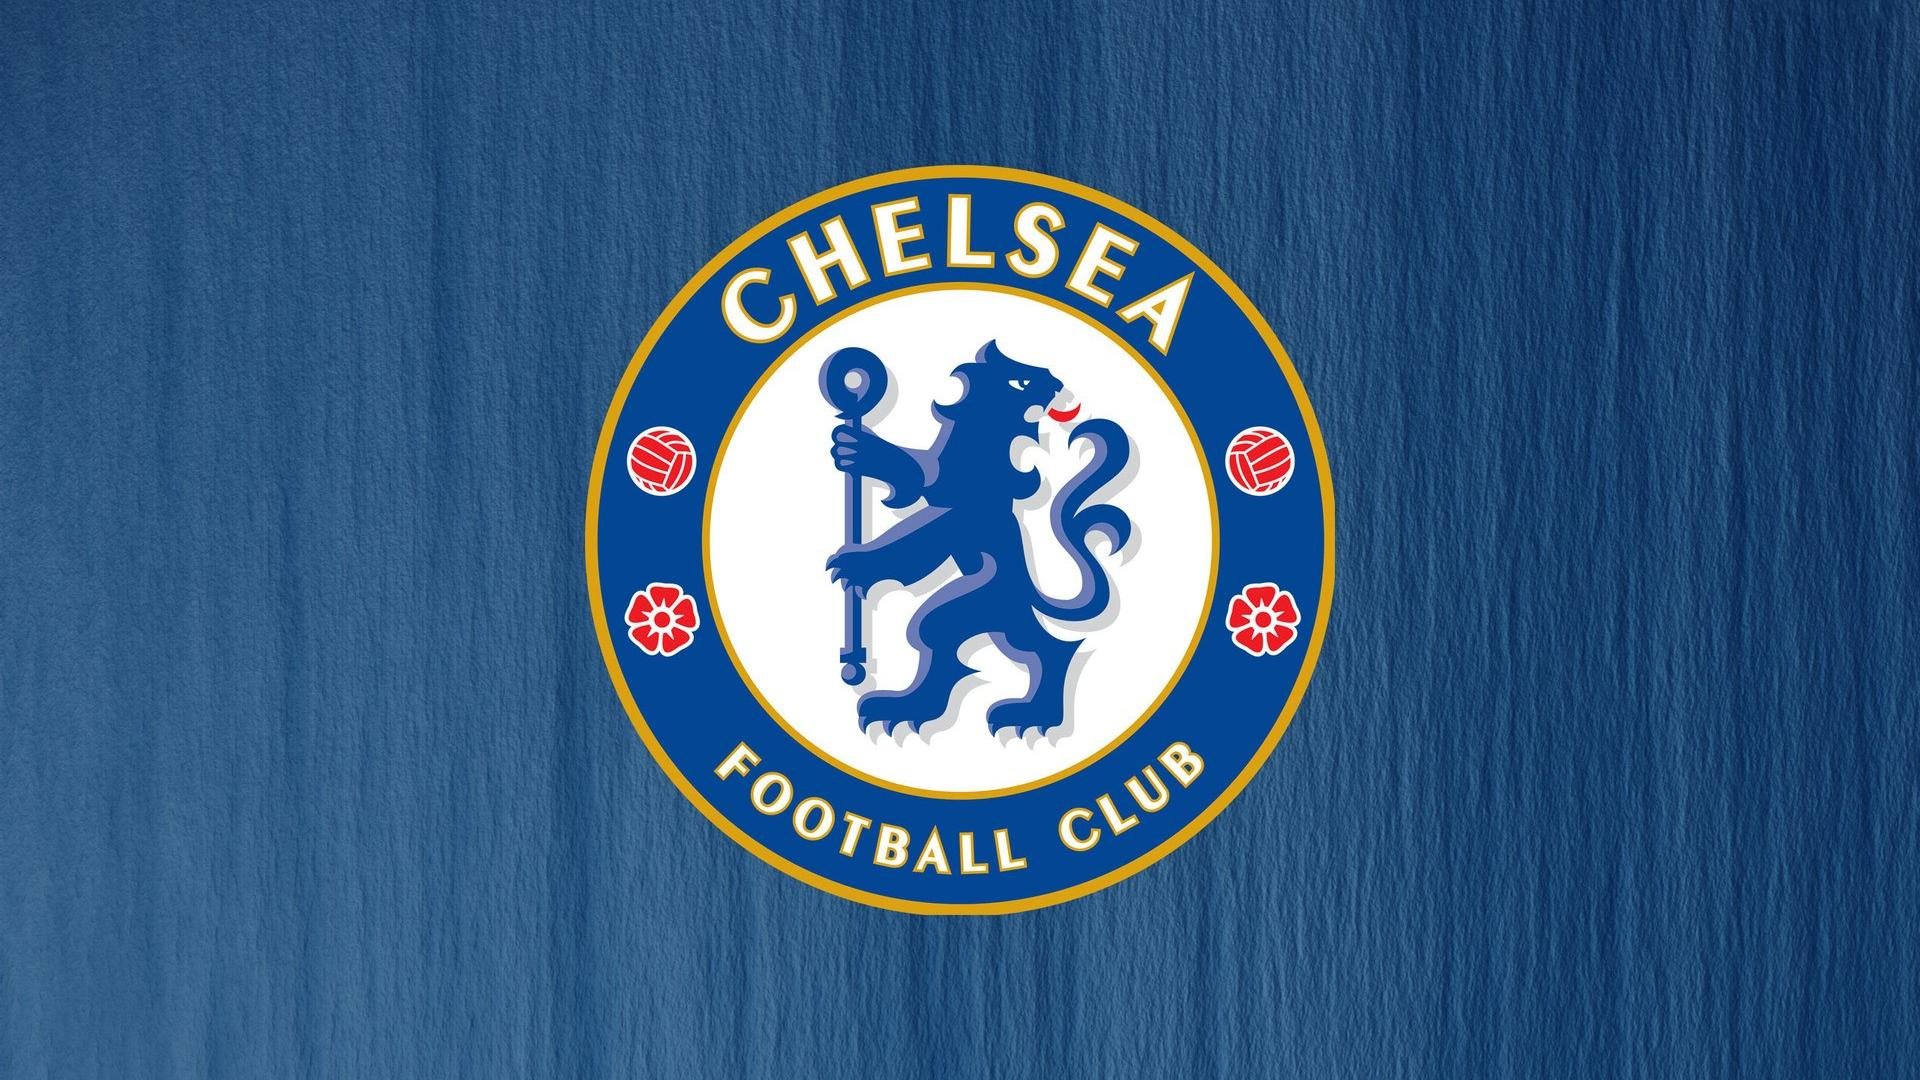 HD Wallpapers Of Football Clubs